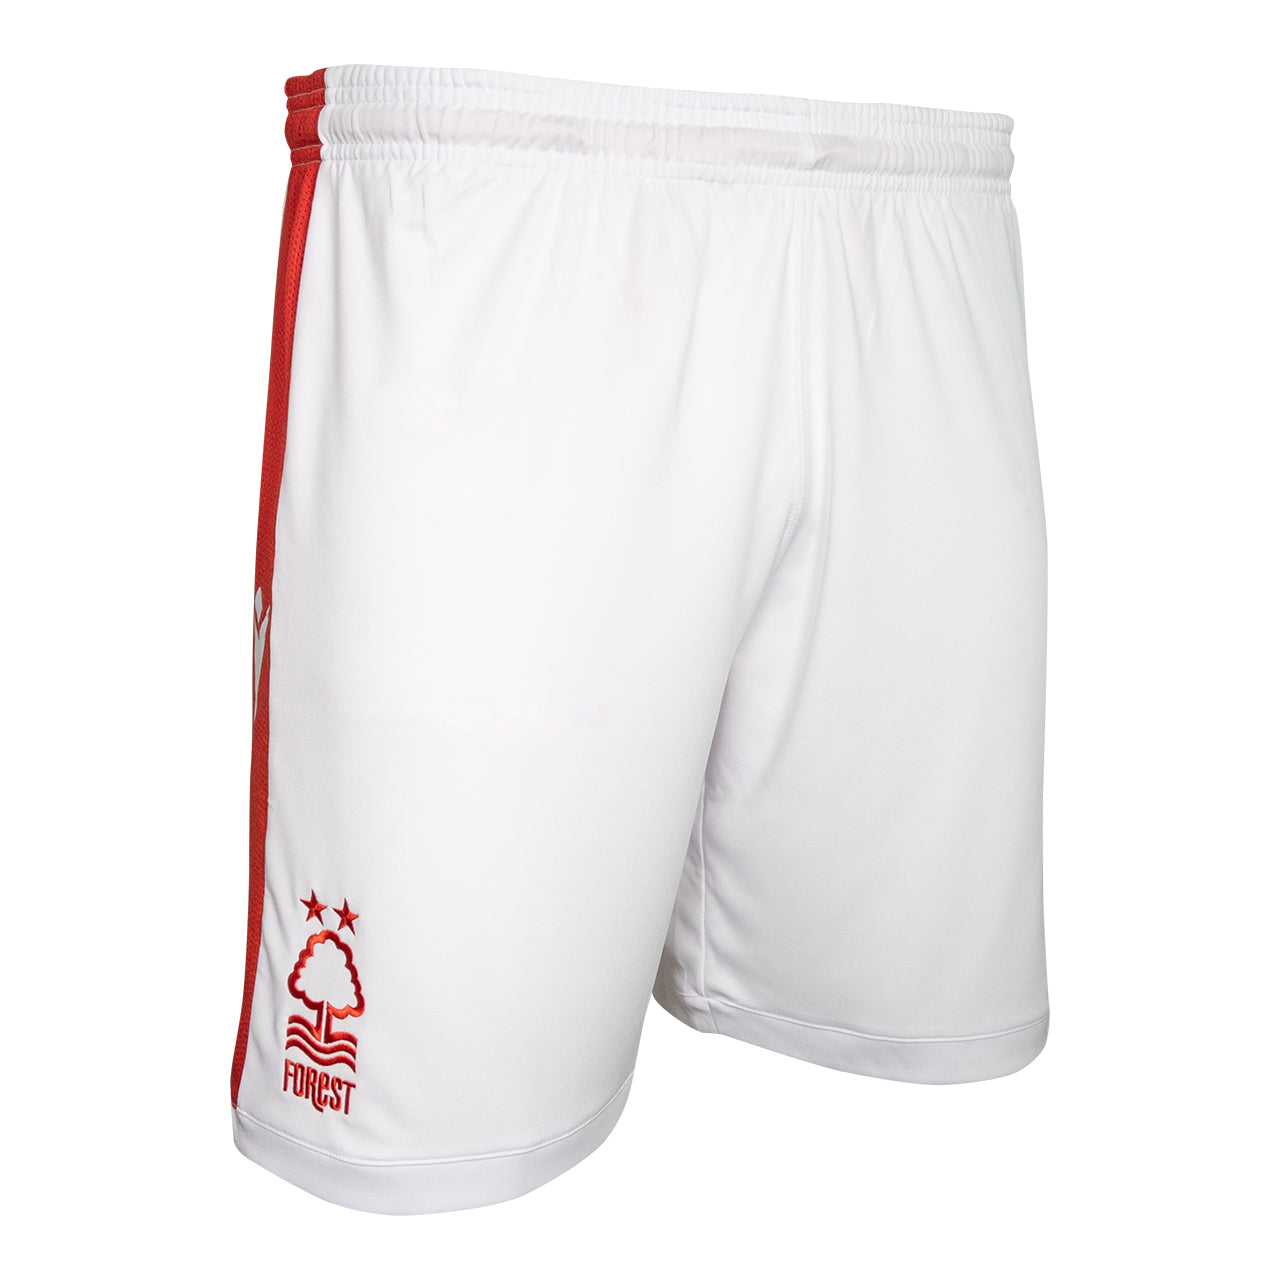 NFFC Junior Home Shorts 2020/21